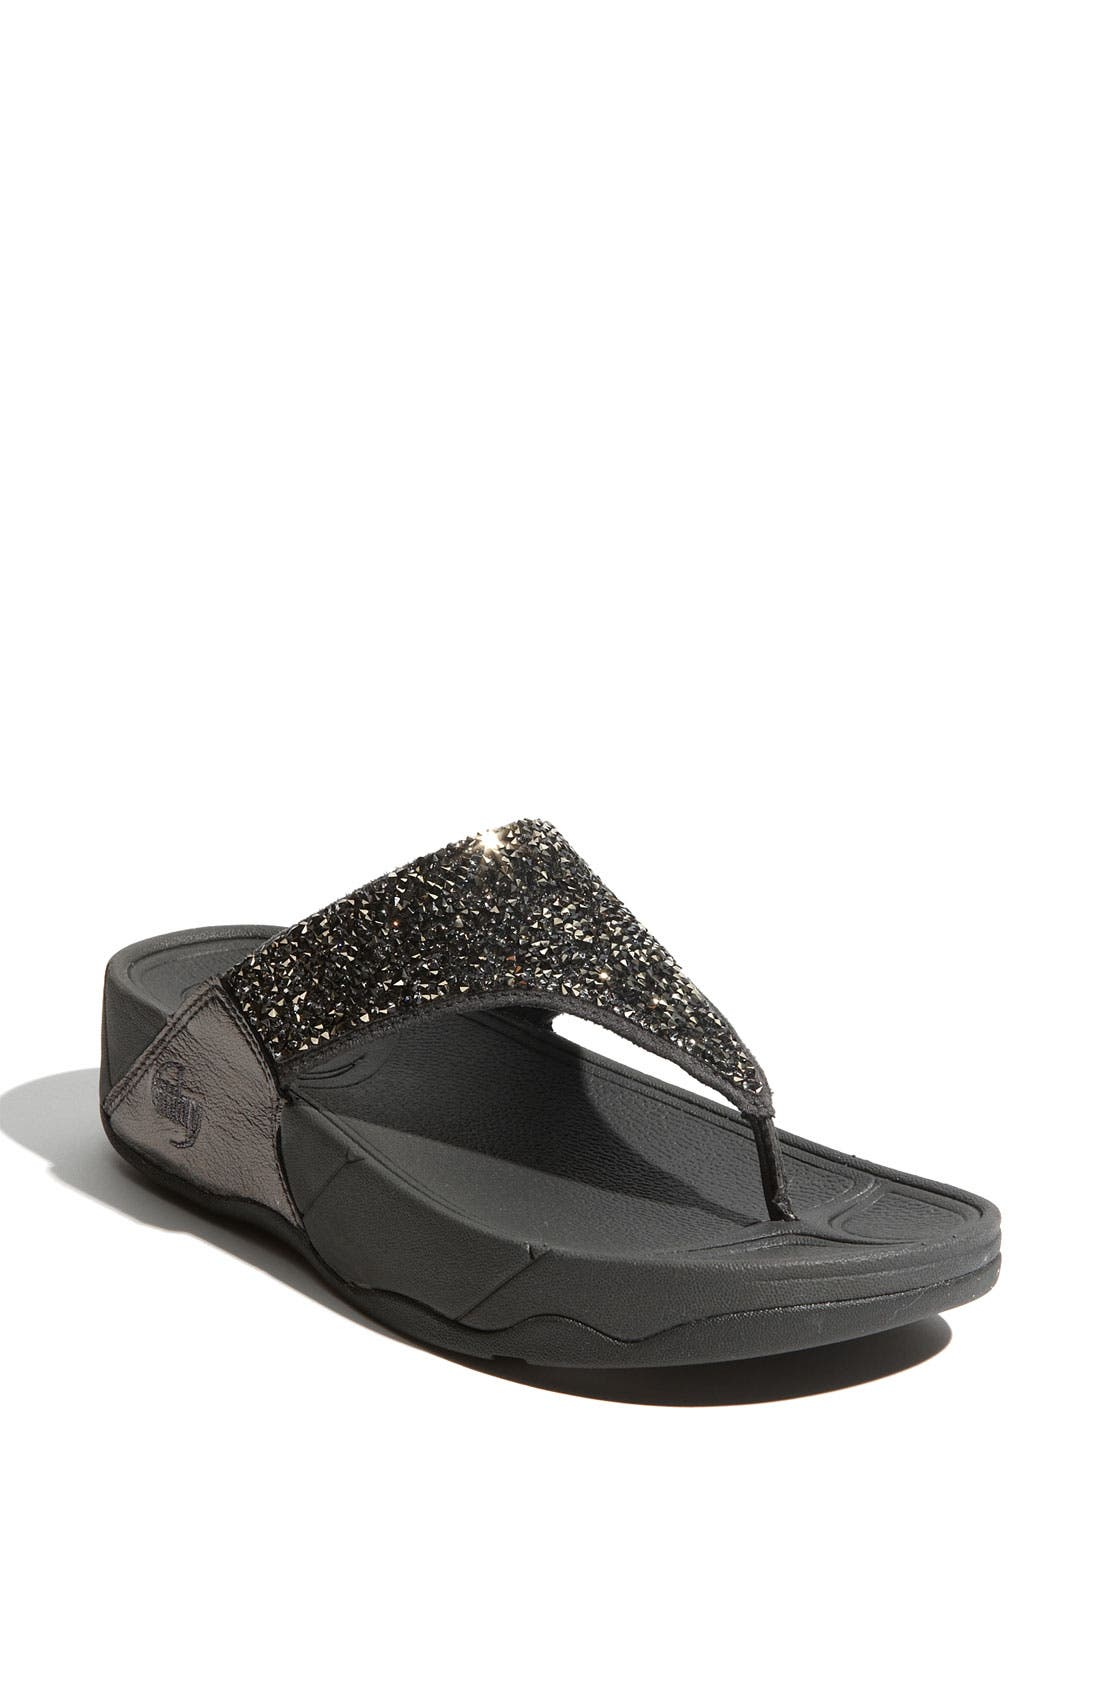 Alternate Image 1 Selected - FitFlop 'Rock Chic™' Sandal